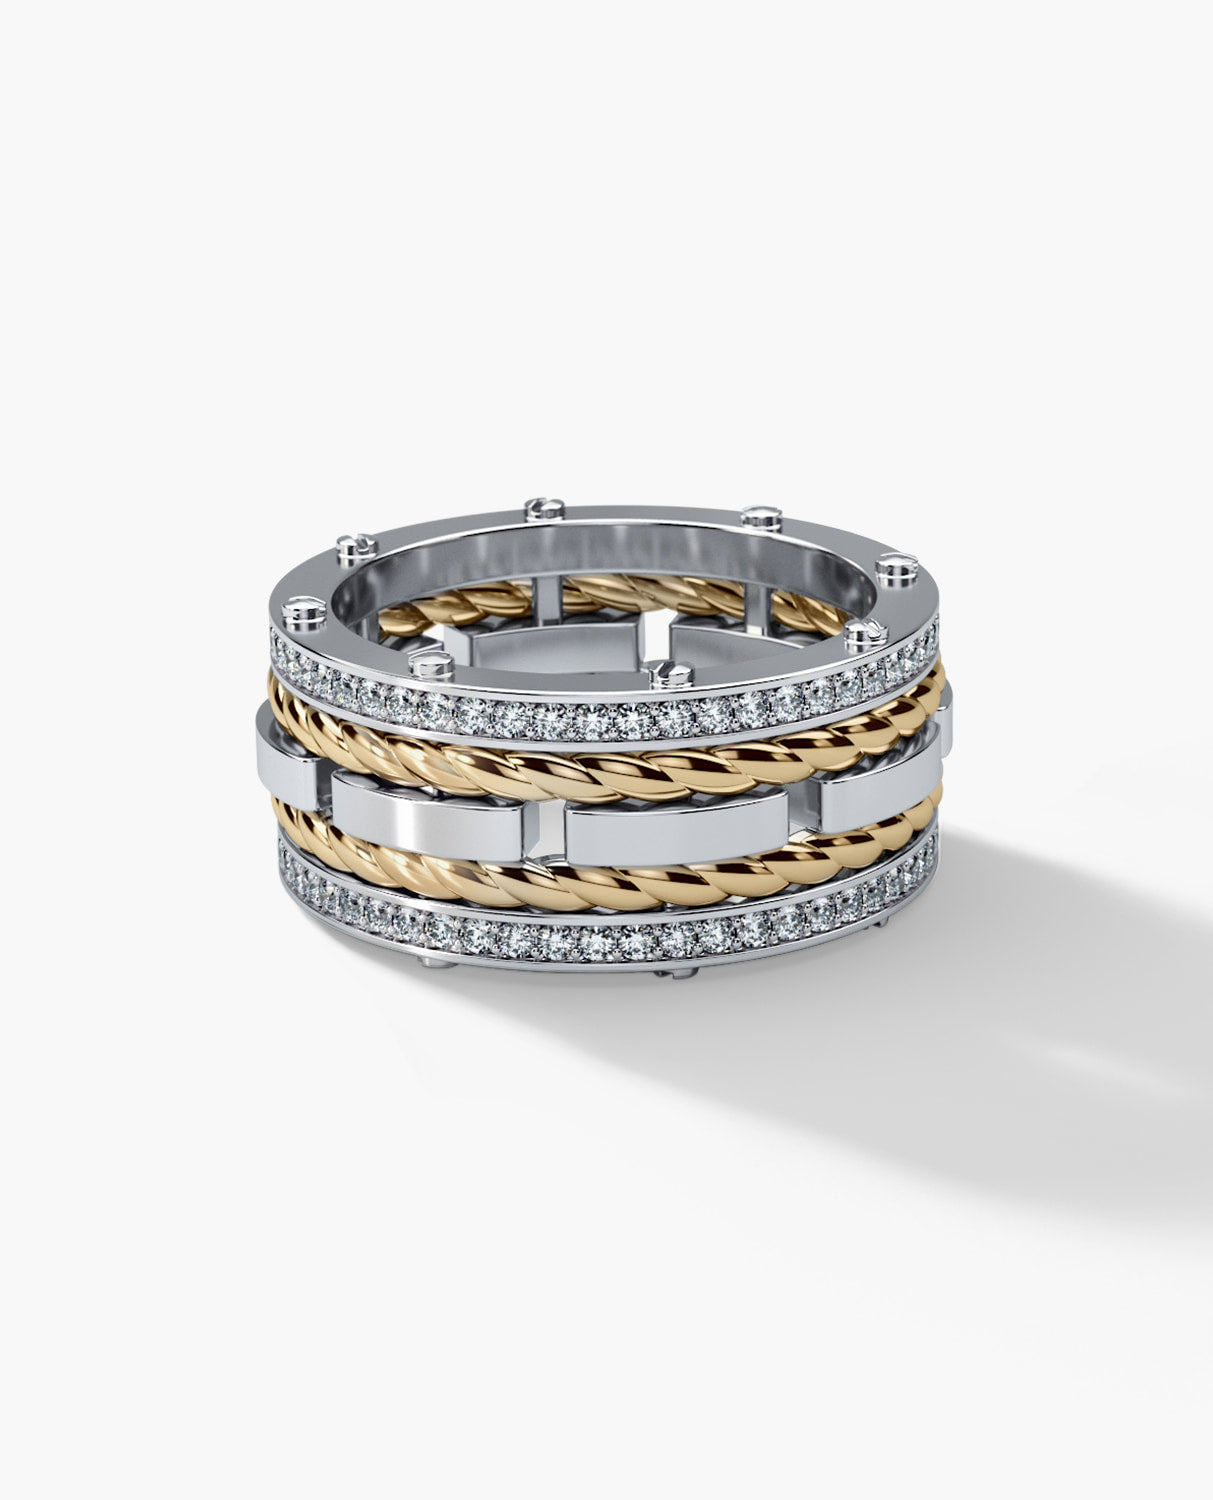 ROPES Mens Two-Tone Gold Wedding Band with Diamonds